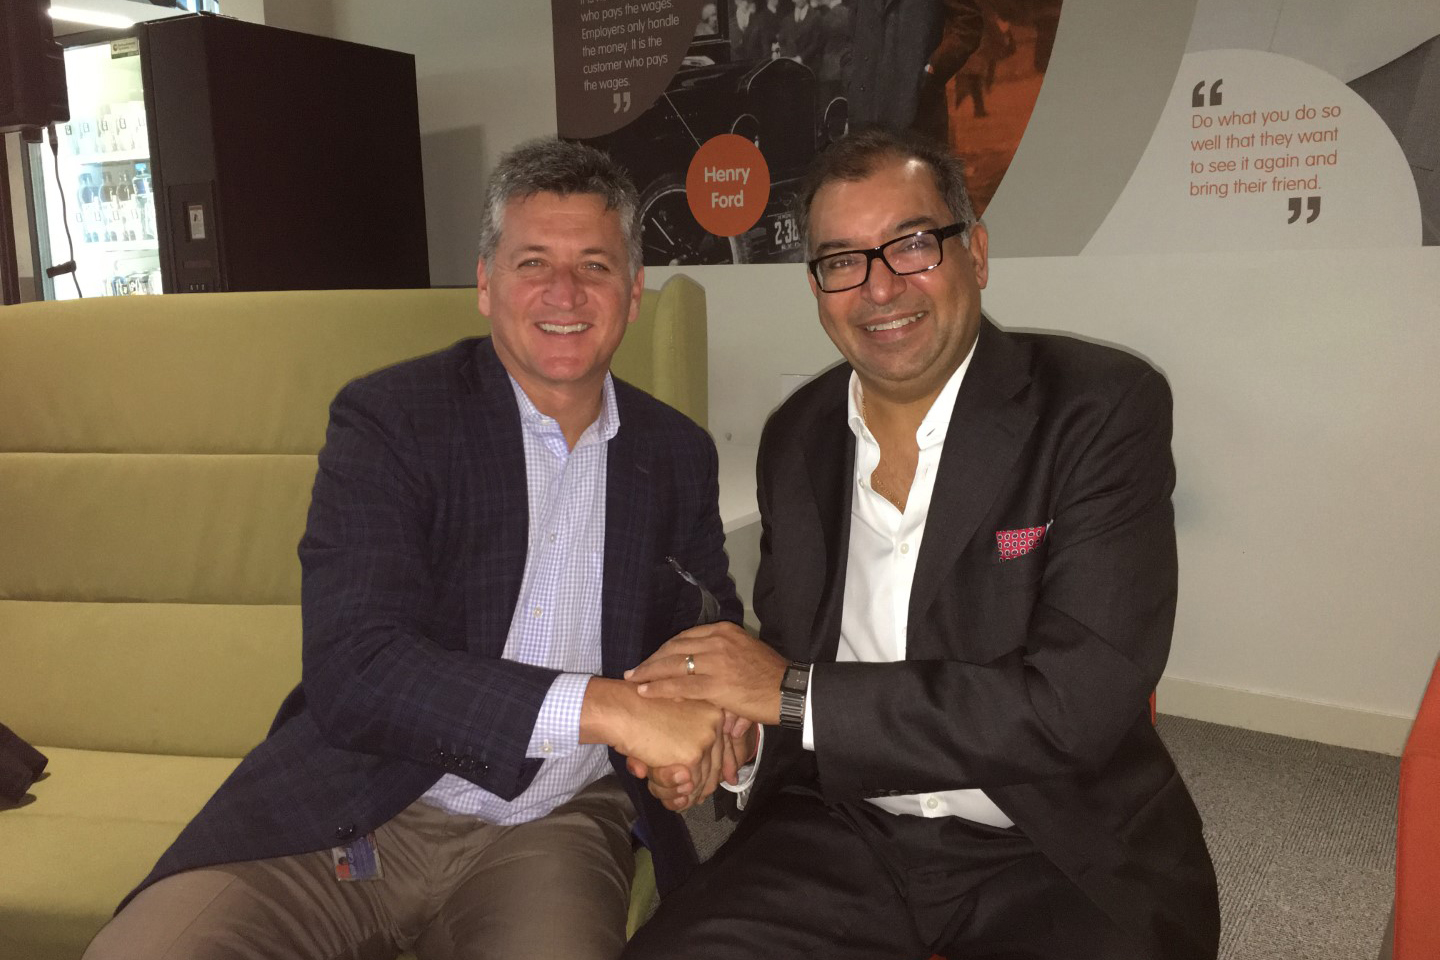 Learning Possibilities CEO and Larry Nelson of Microsoft sign a Global Alliance